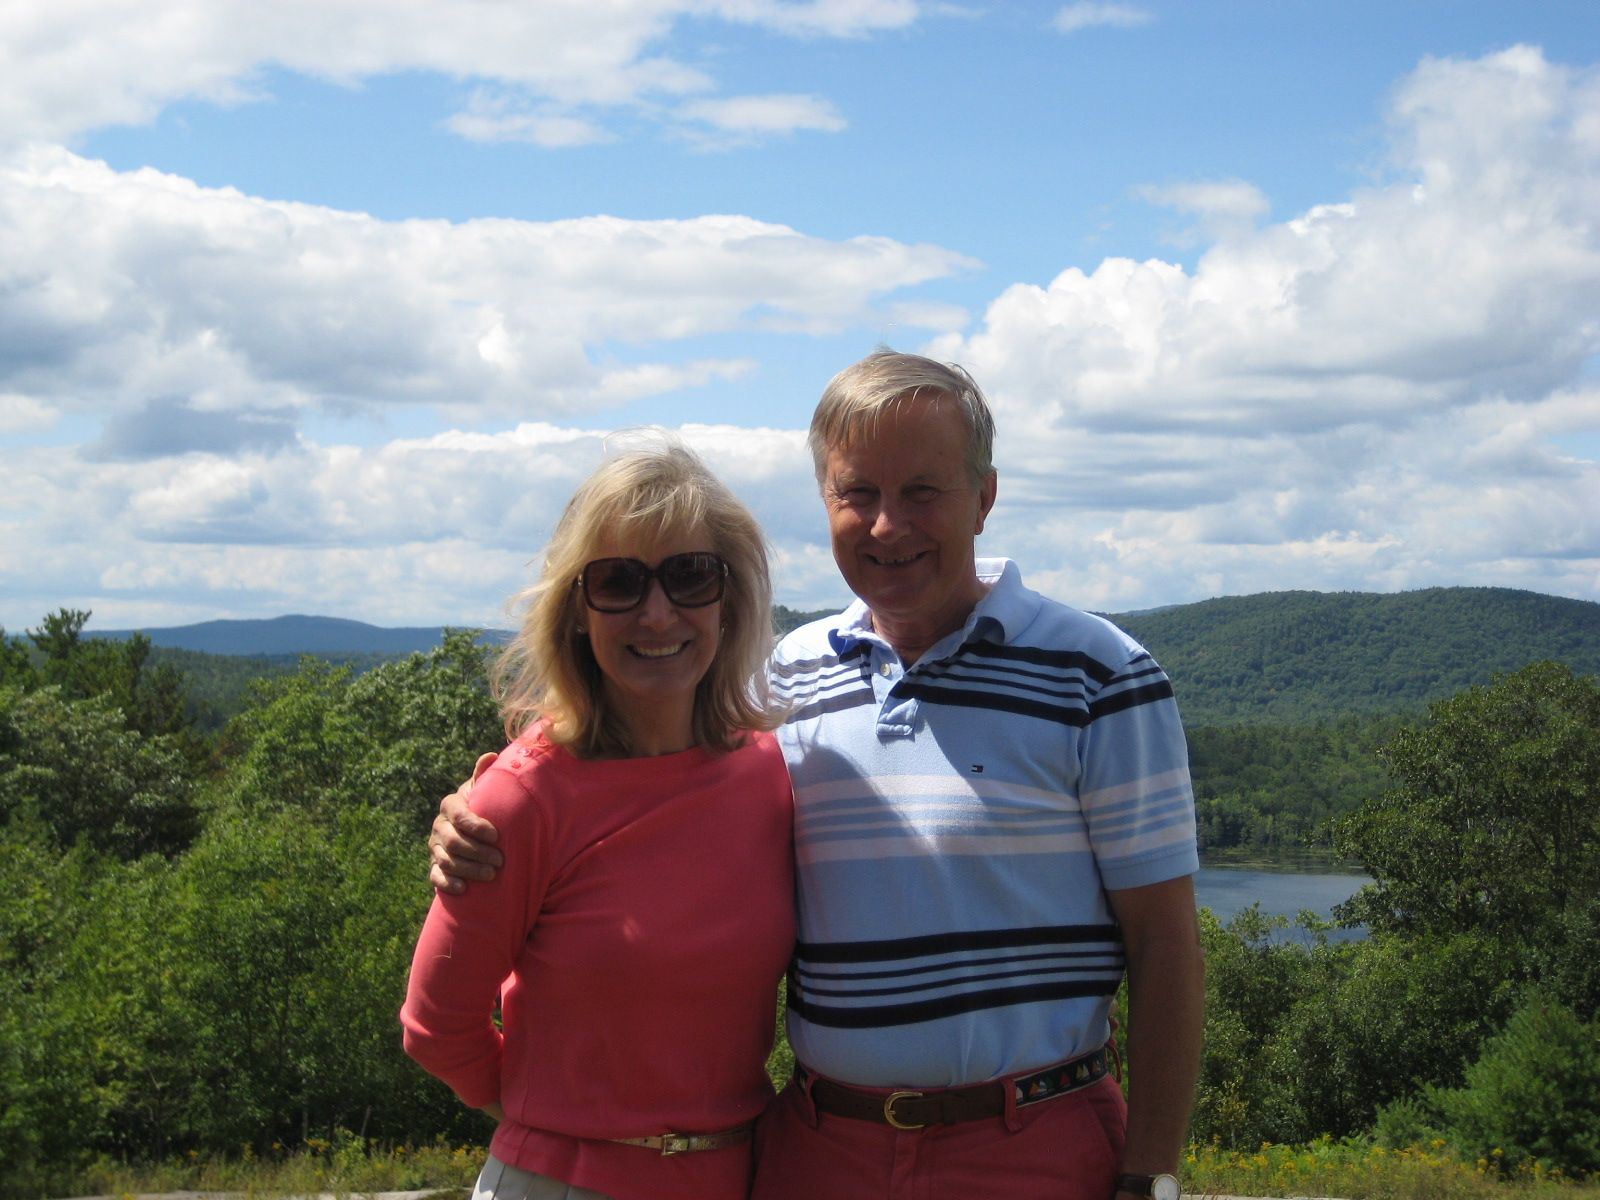 Christie and John Brooks '60 in Sunapee, NH on August 14, 2014.